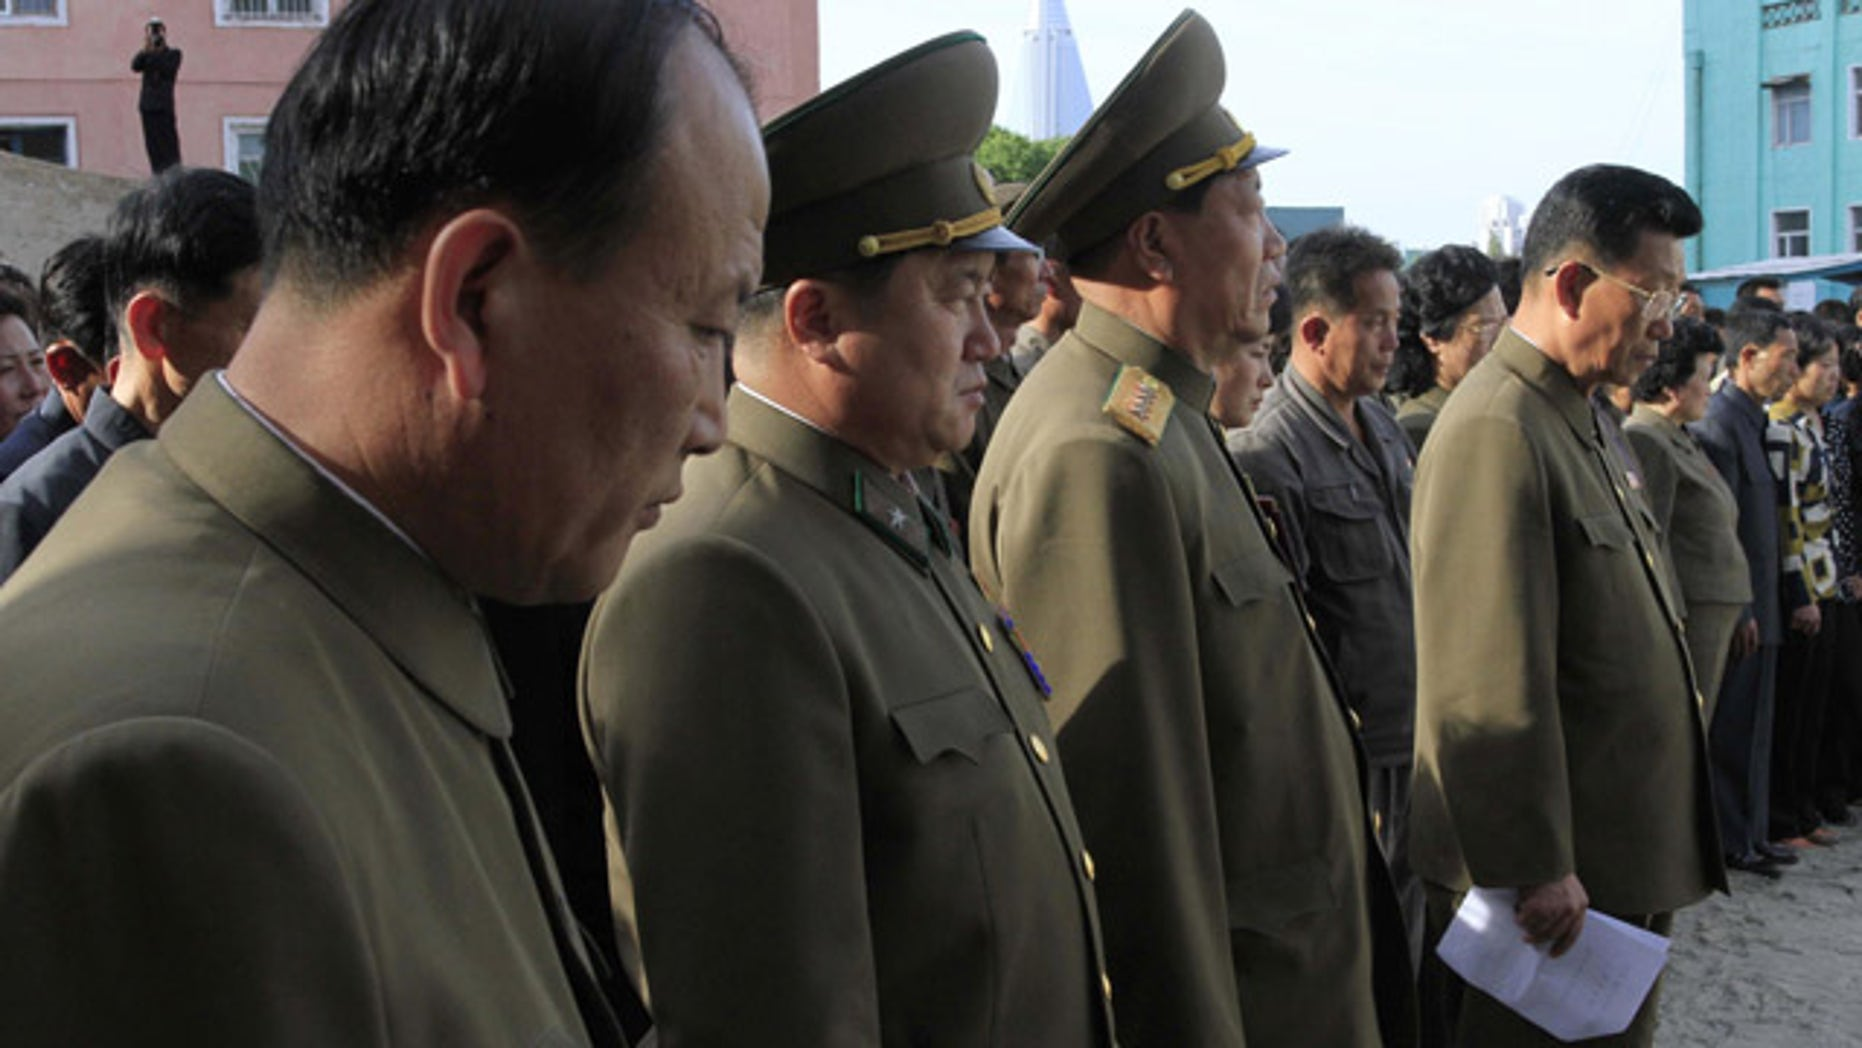 May 17, 2014: North Korean officials stand among the families of victims of an accident at an apartment construction site in Pyongyang, North Korea, during a gathering in the capital where senior officials apologized and took responsibility. (AP Photo/Kim Kwang Hyon)